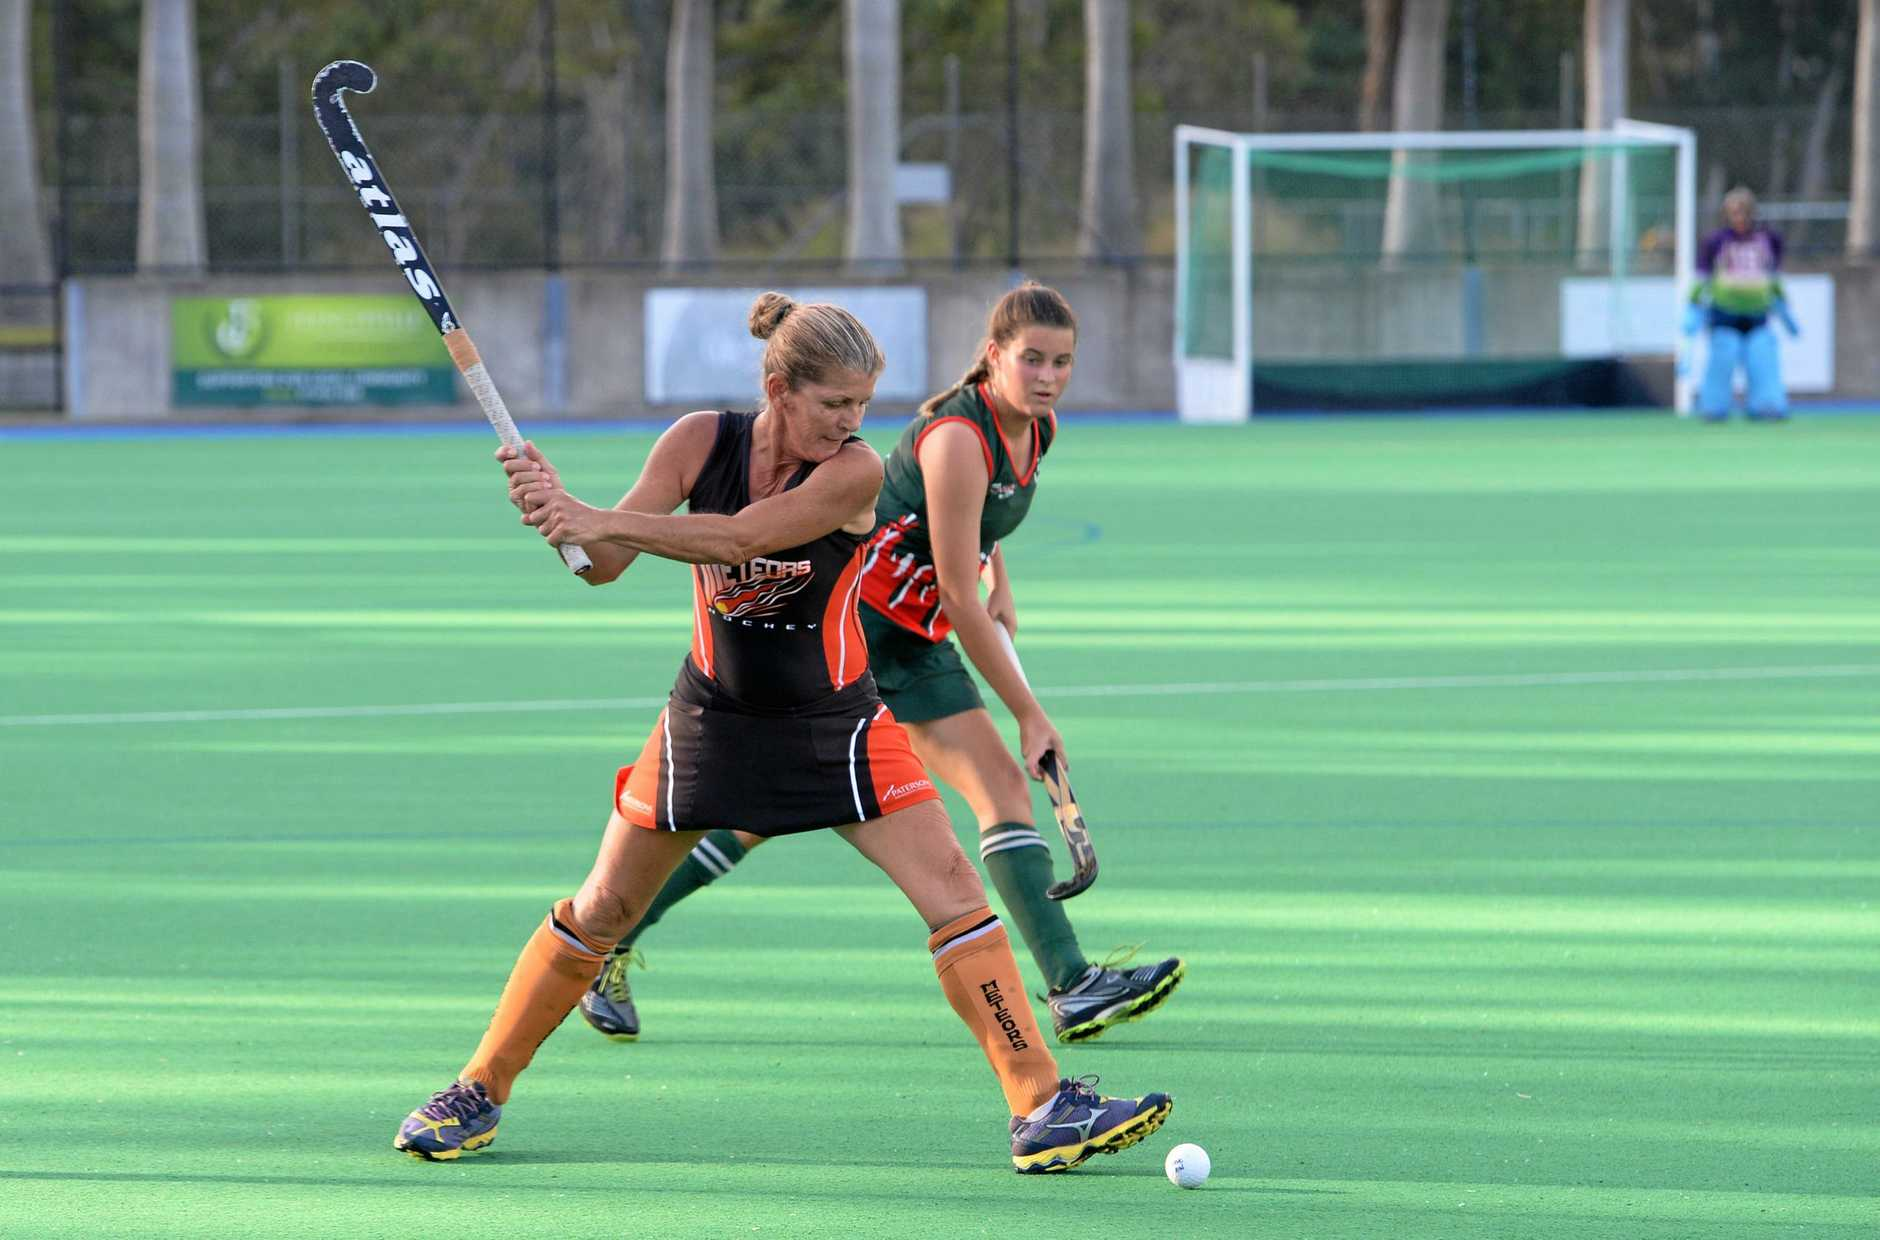 Meteors player Sue Rayner playing in the Women's A grade hockey game between Frenchville and Meteors at Kalka Shades on Saturday evening.  Photo: Chris Ison / The Morning Bulletin